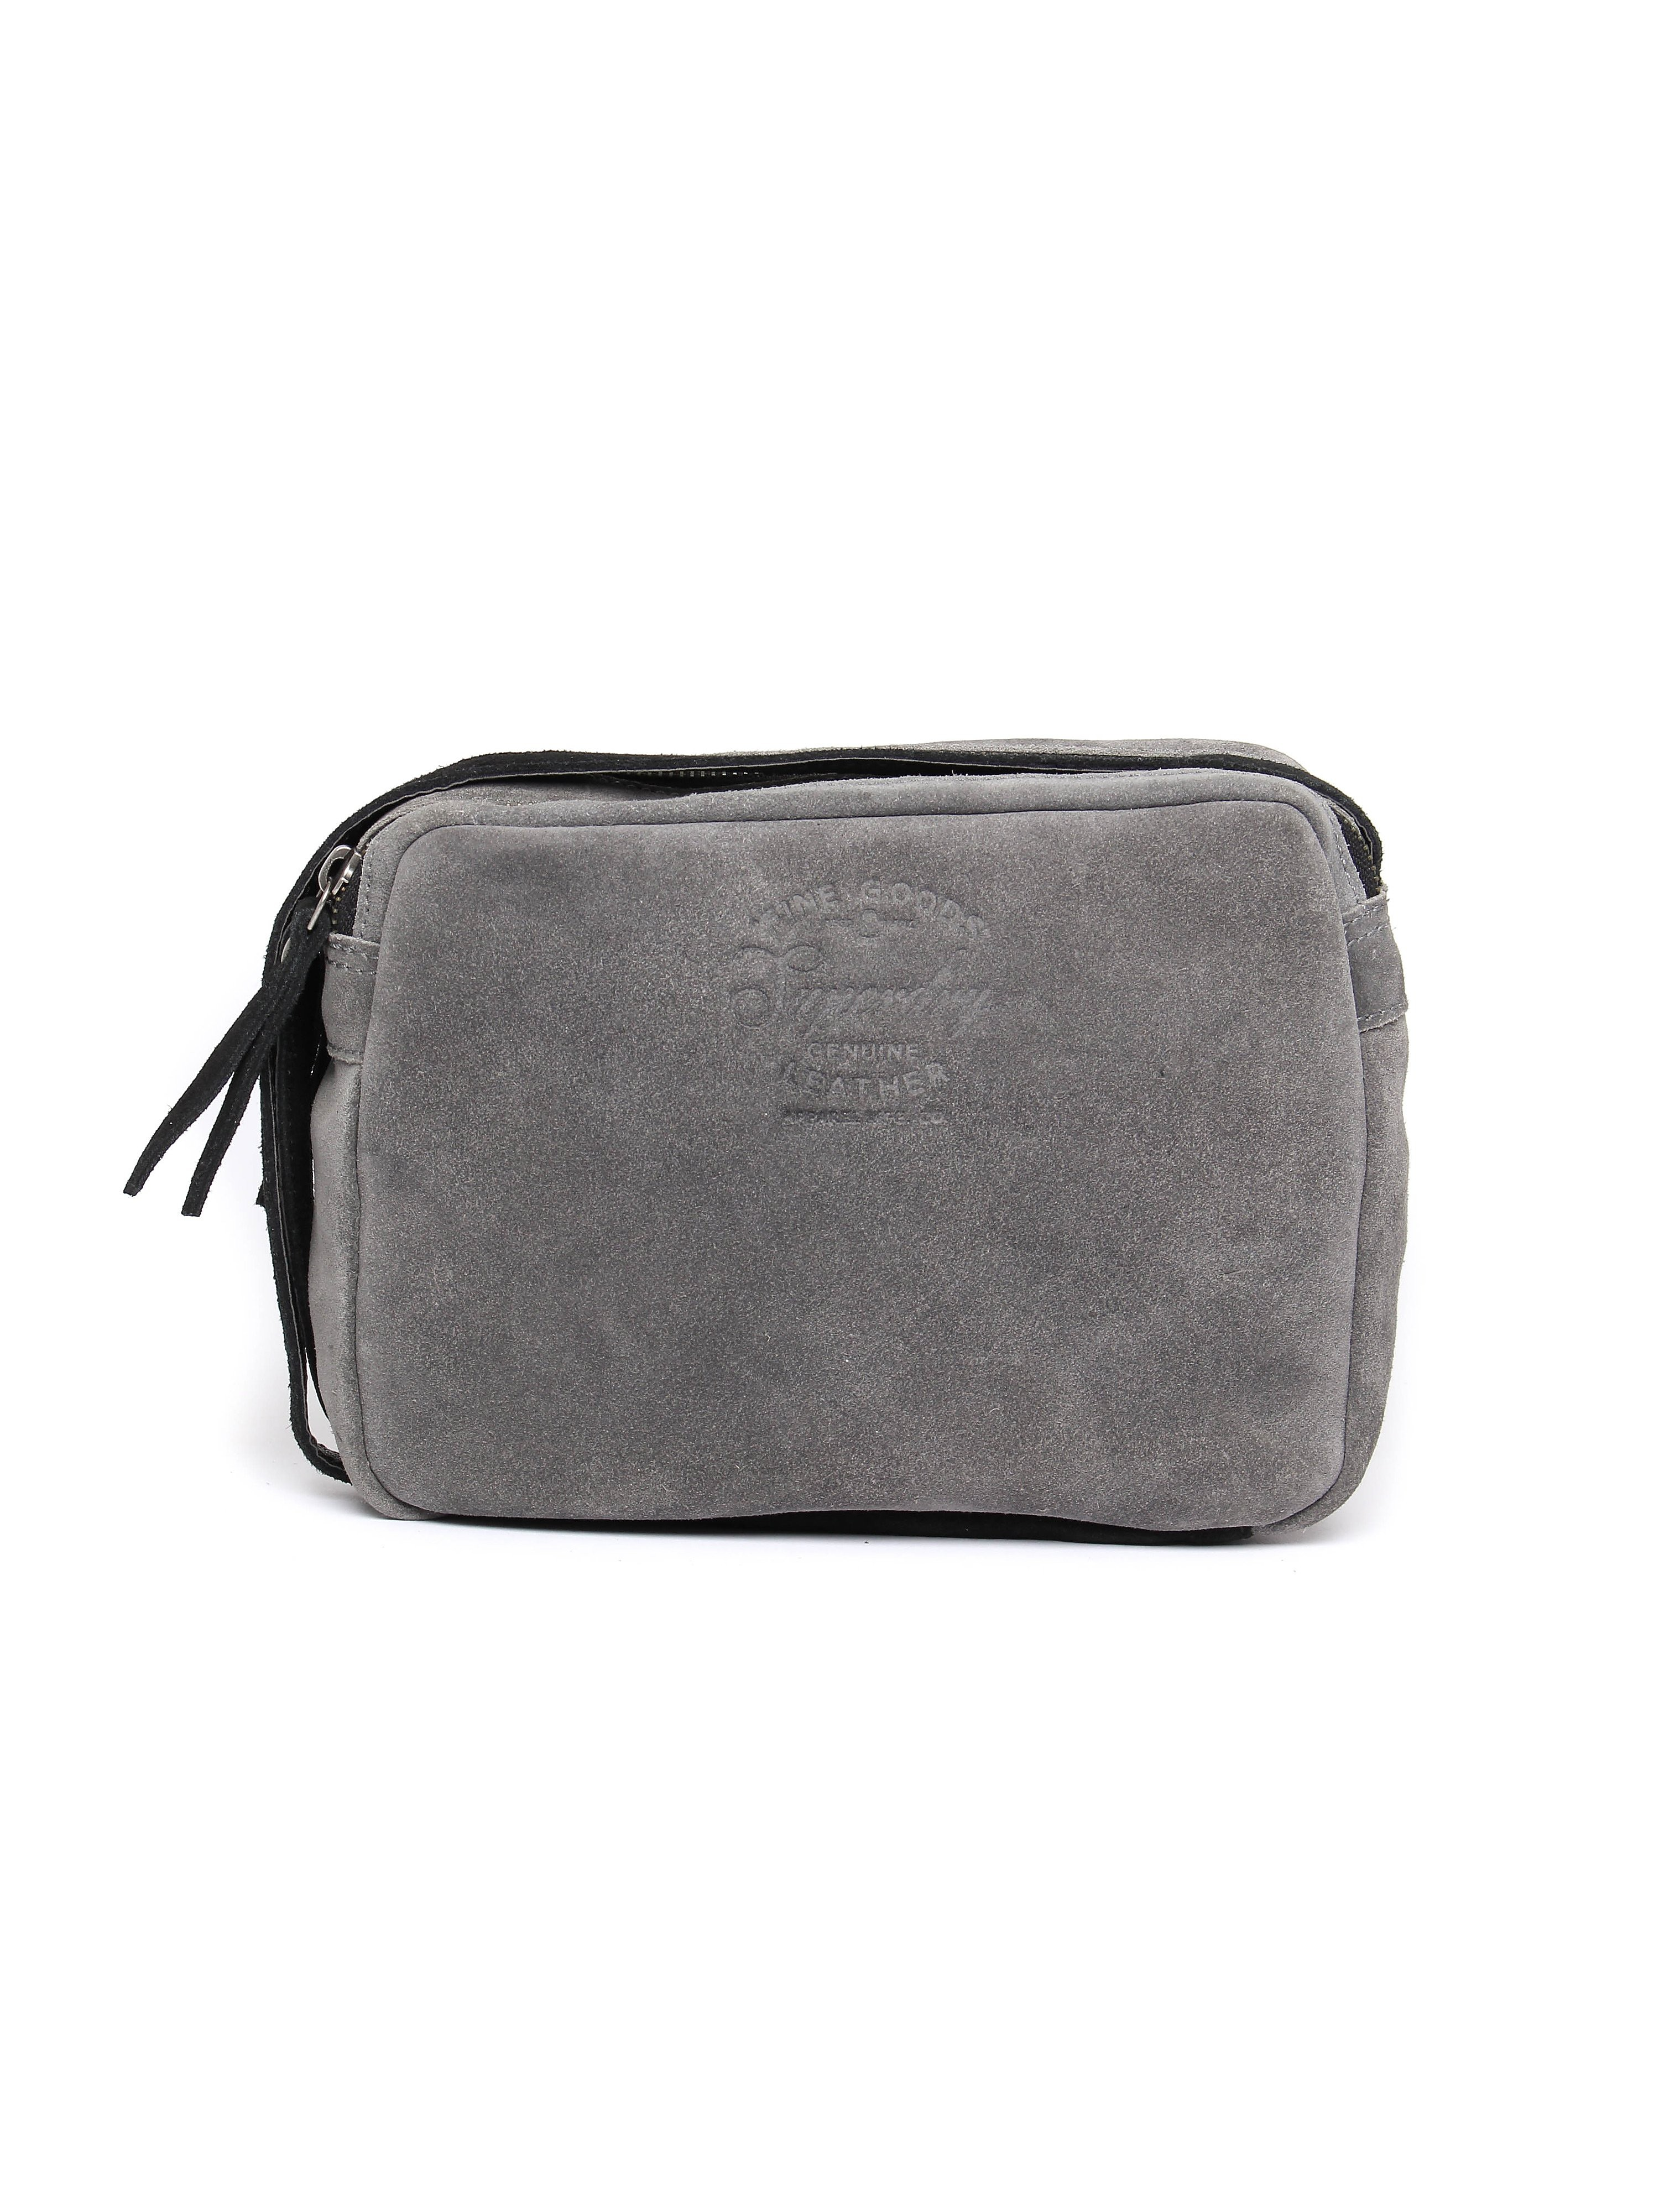 Superdry Small Anneka Cross Body